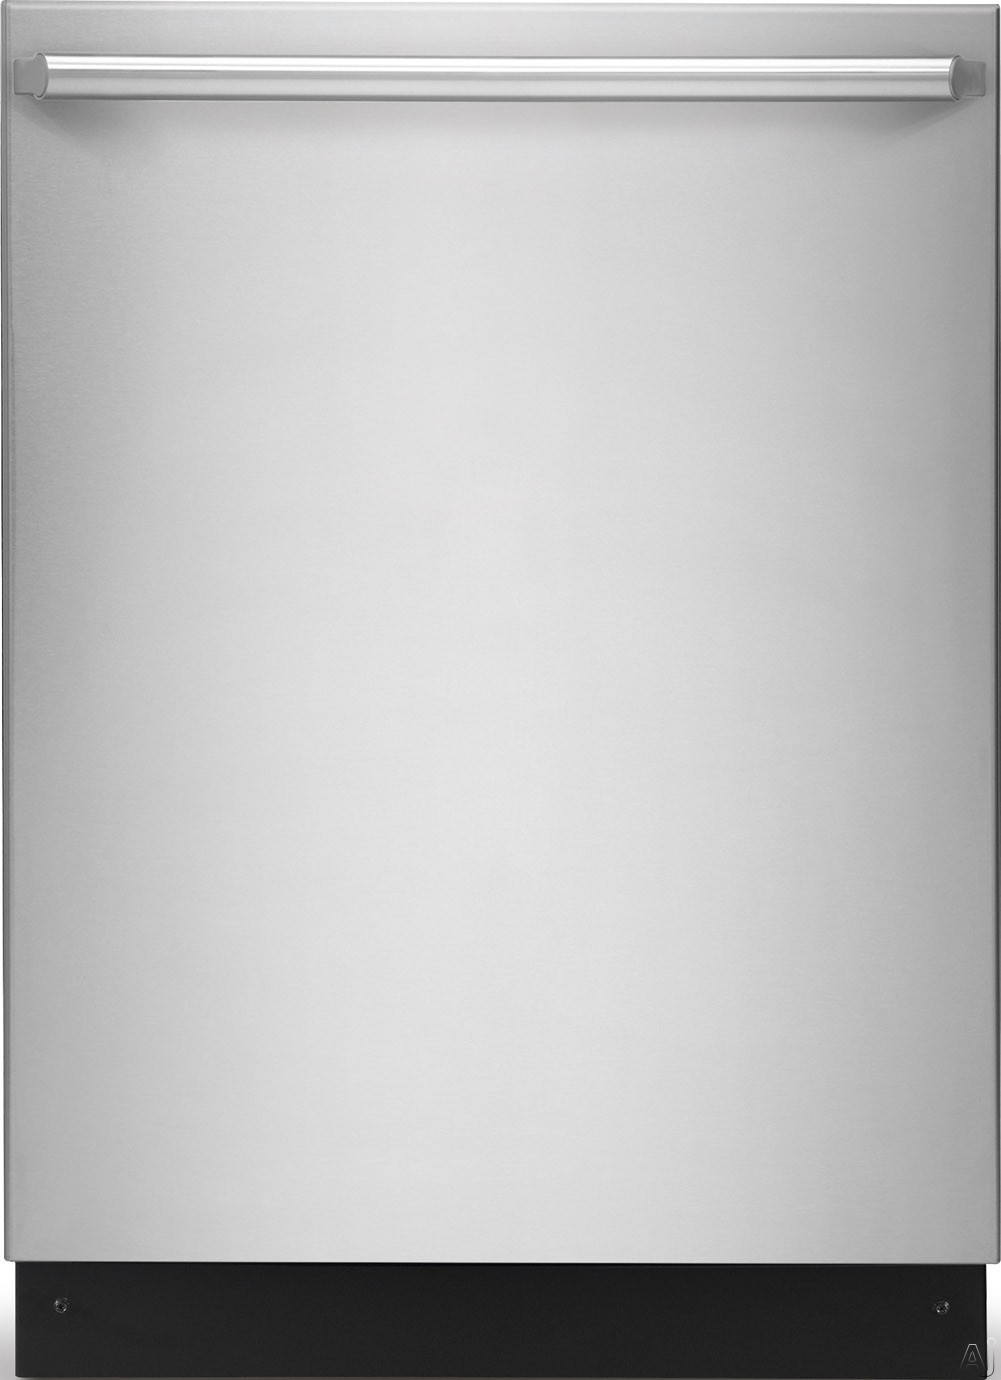 Electrolux EW24ID80QS Fully Integrated Dishwasher with 9 Wash Cycles, Wave Touch Controls, 18 Perfect Stemware Holders, 4 Cup Clips, Adjustable Upper Rack, Removable Third Rack, SatelliteSpray Arm, ENERGY STAR and Target Wash Zones EW24ID80QS